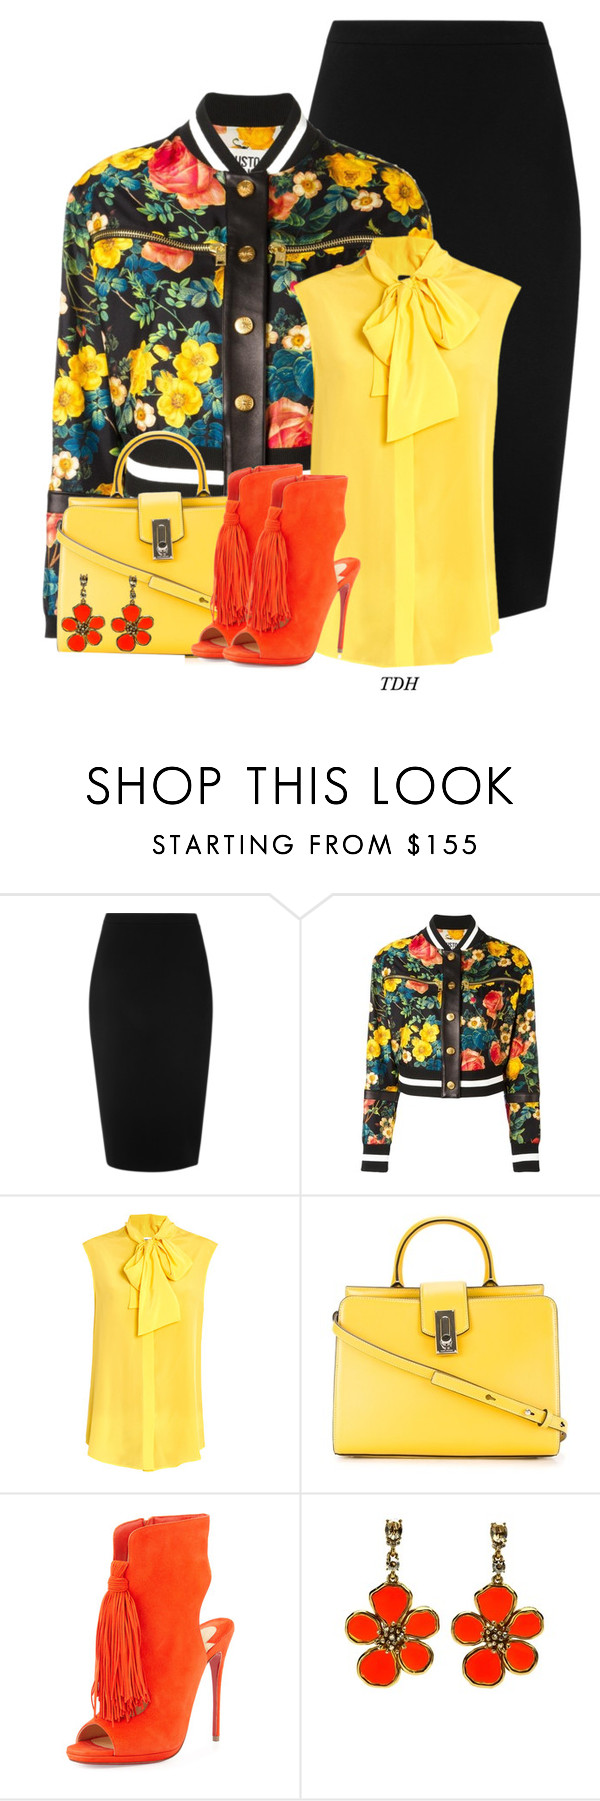 """""""Print Bomber Jacket"""" by talvadh ❤ liked on Polyvore featuring L.K.Bennett, FAUSTO PUGLISI, Moschino, Marc Jacobs, Christian Louboutin and Oscar de la Renta"""